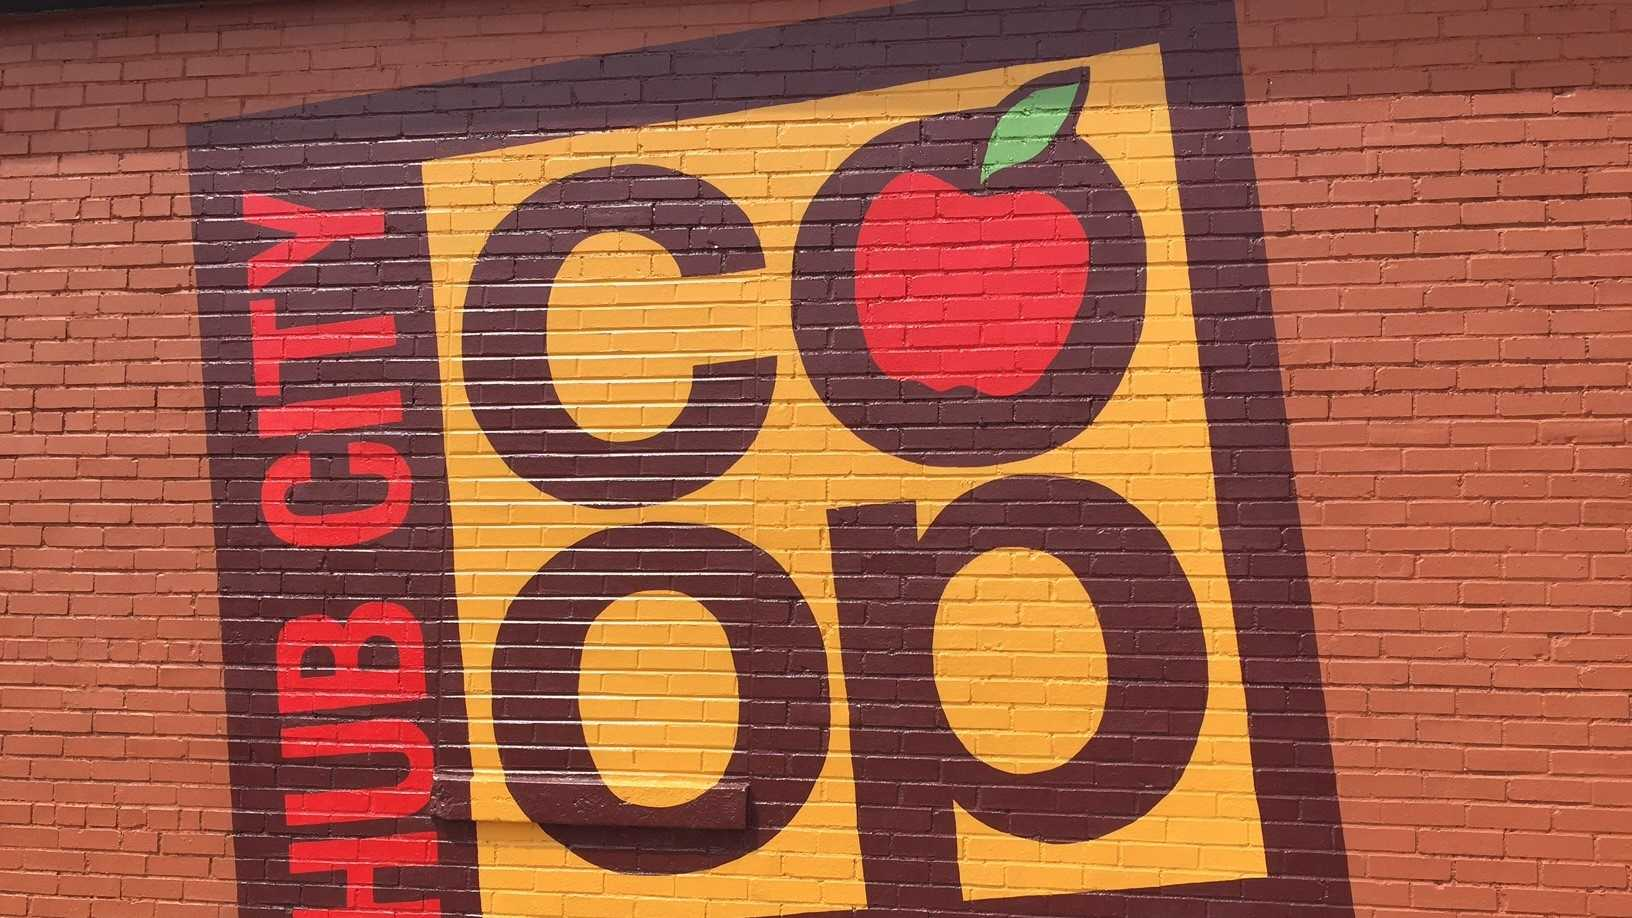 The Hub City Co-op is the first grocery store of its kind in South Carolina.